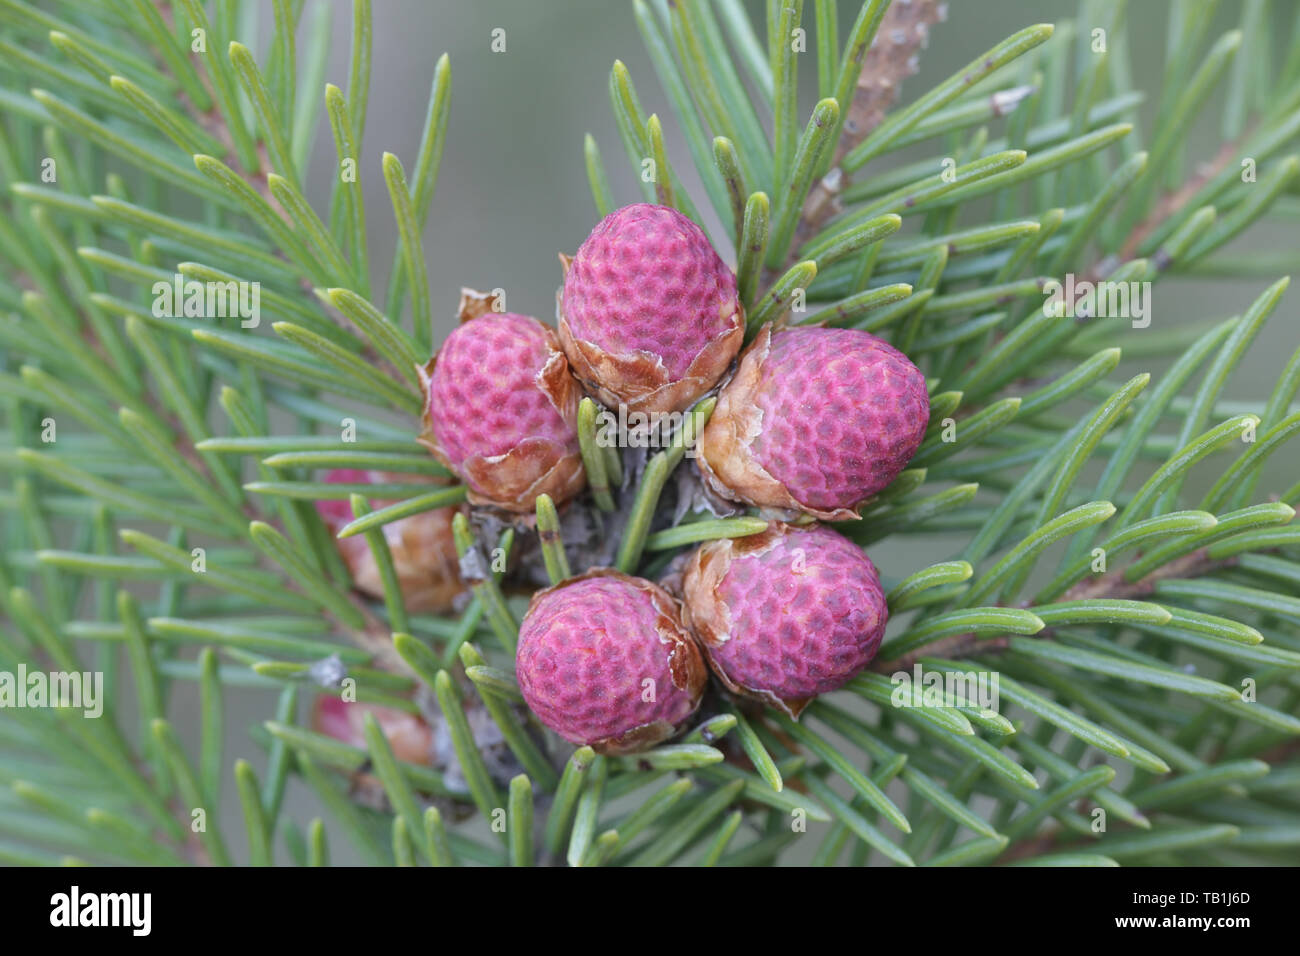 Fresh cones of Picea abies, the Norway spruce or European spruce - Stock Image